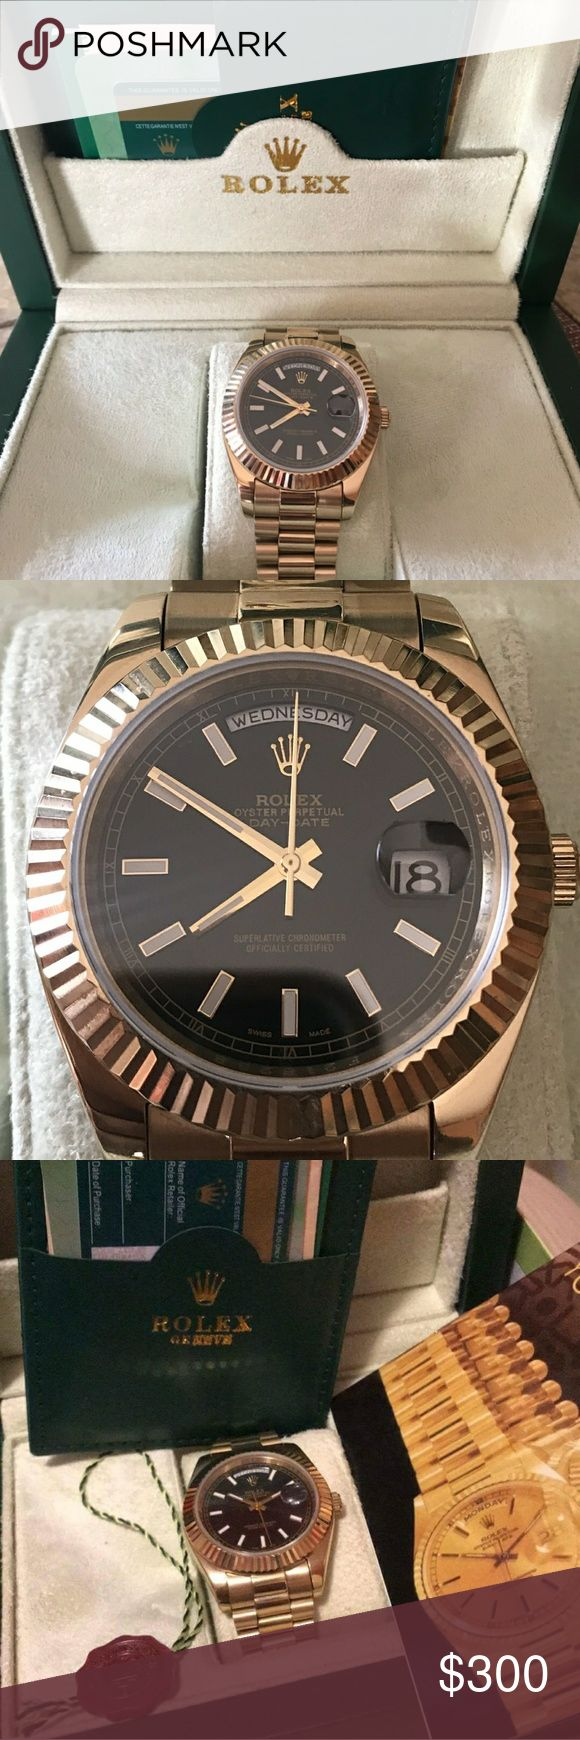 Rolex day date Rolex Day Date:  -High quality rep -Heavy Stainless Steel -Real 18k gold -Proper Magnification on Cyclops -Etching of Crown at 6 -GLIDES -Comes with Box and Papers  To purchase please contact me at: (520) 357-1398  I can get just about any rep watch  Watches I can get: AP, Breitling, Omega, Rolex, Tudor, Patek Philippe, Cartier, Hublot and more!!! Rolex Accessories Watches